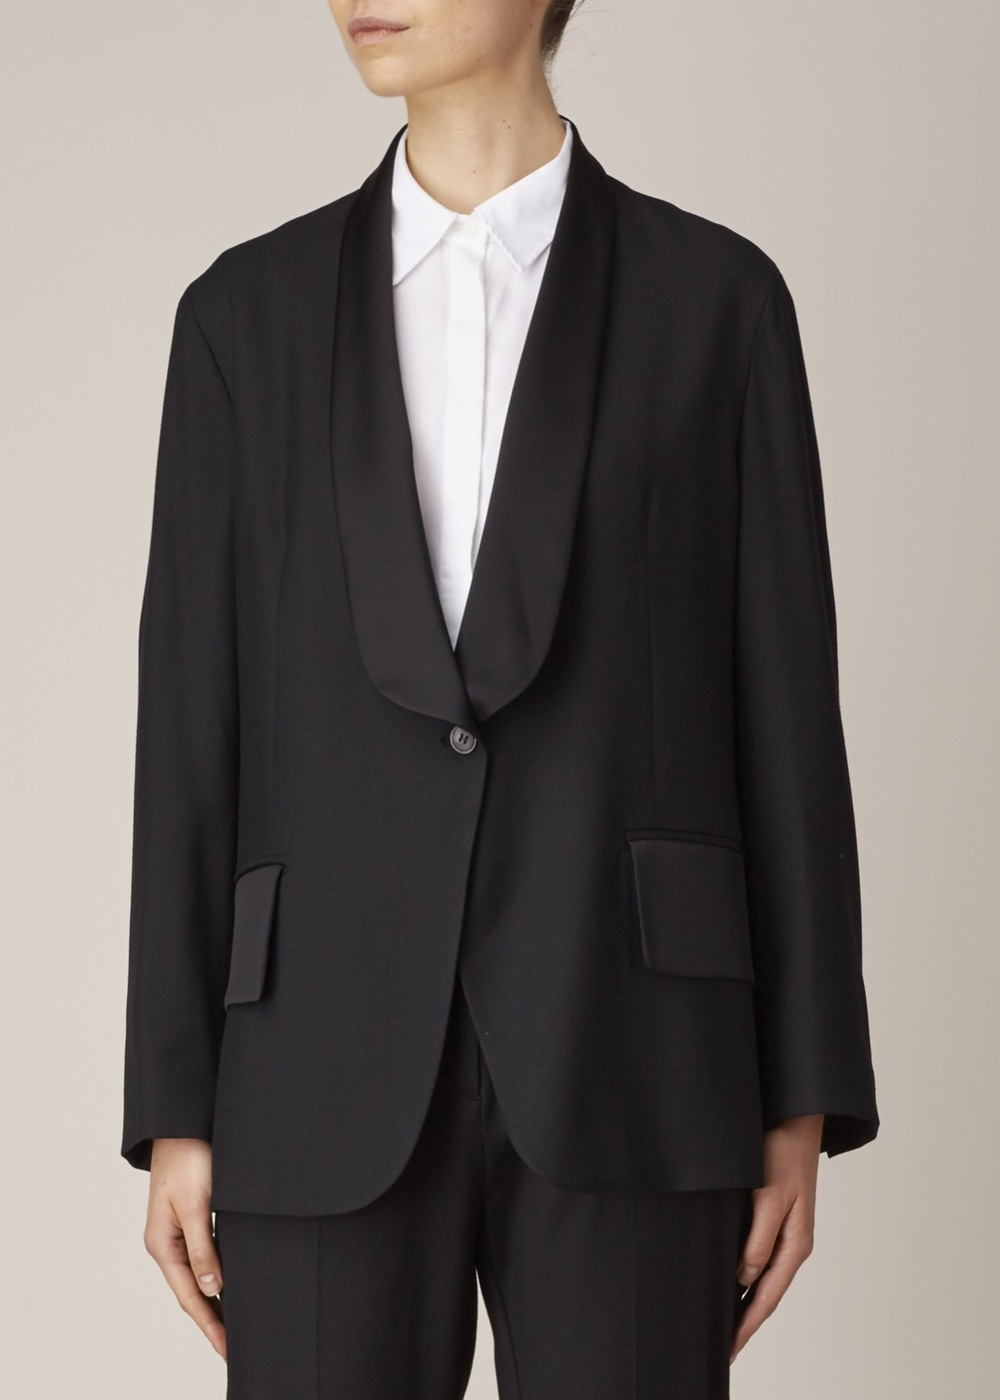 MM6 Maison Margiela Black Single Button Blazer